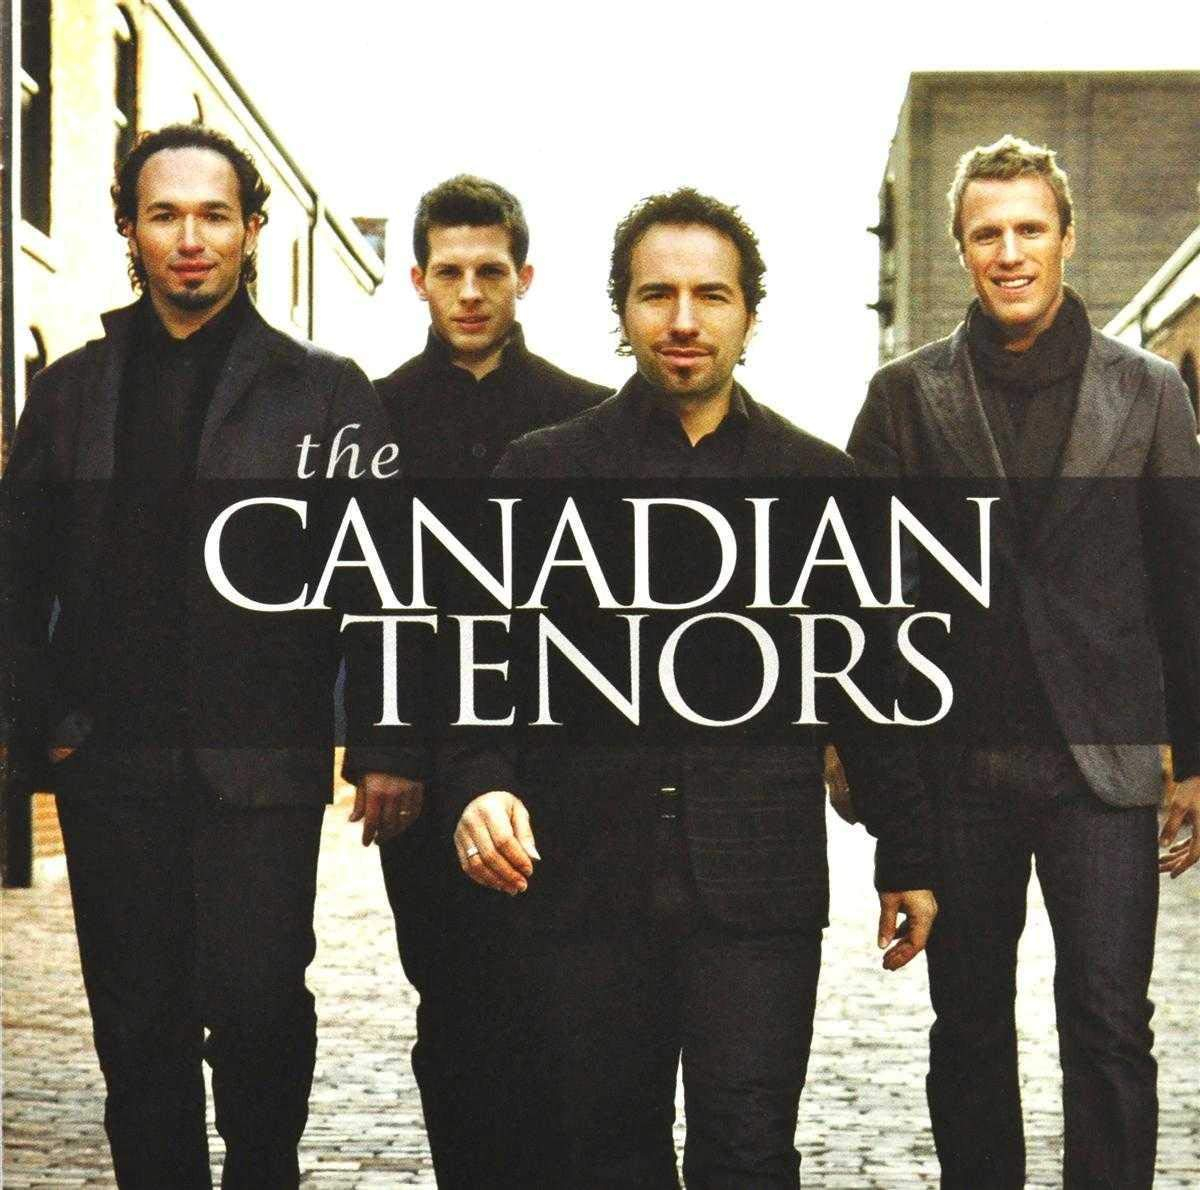 The Canadian Tenors – The Canadian Tenors (2008) [FLAC]